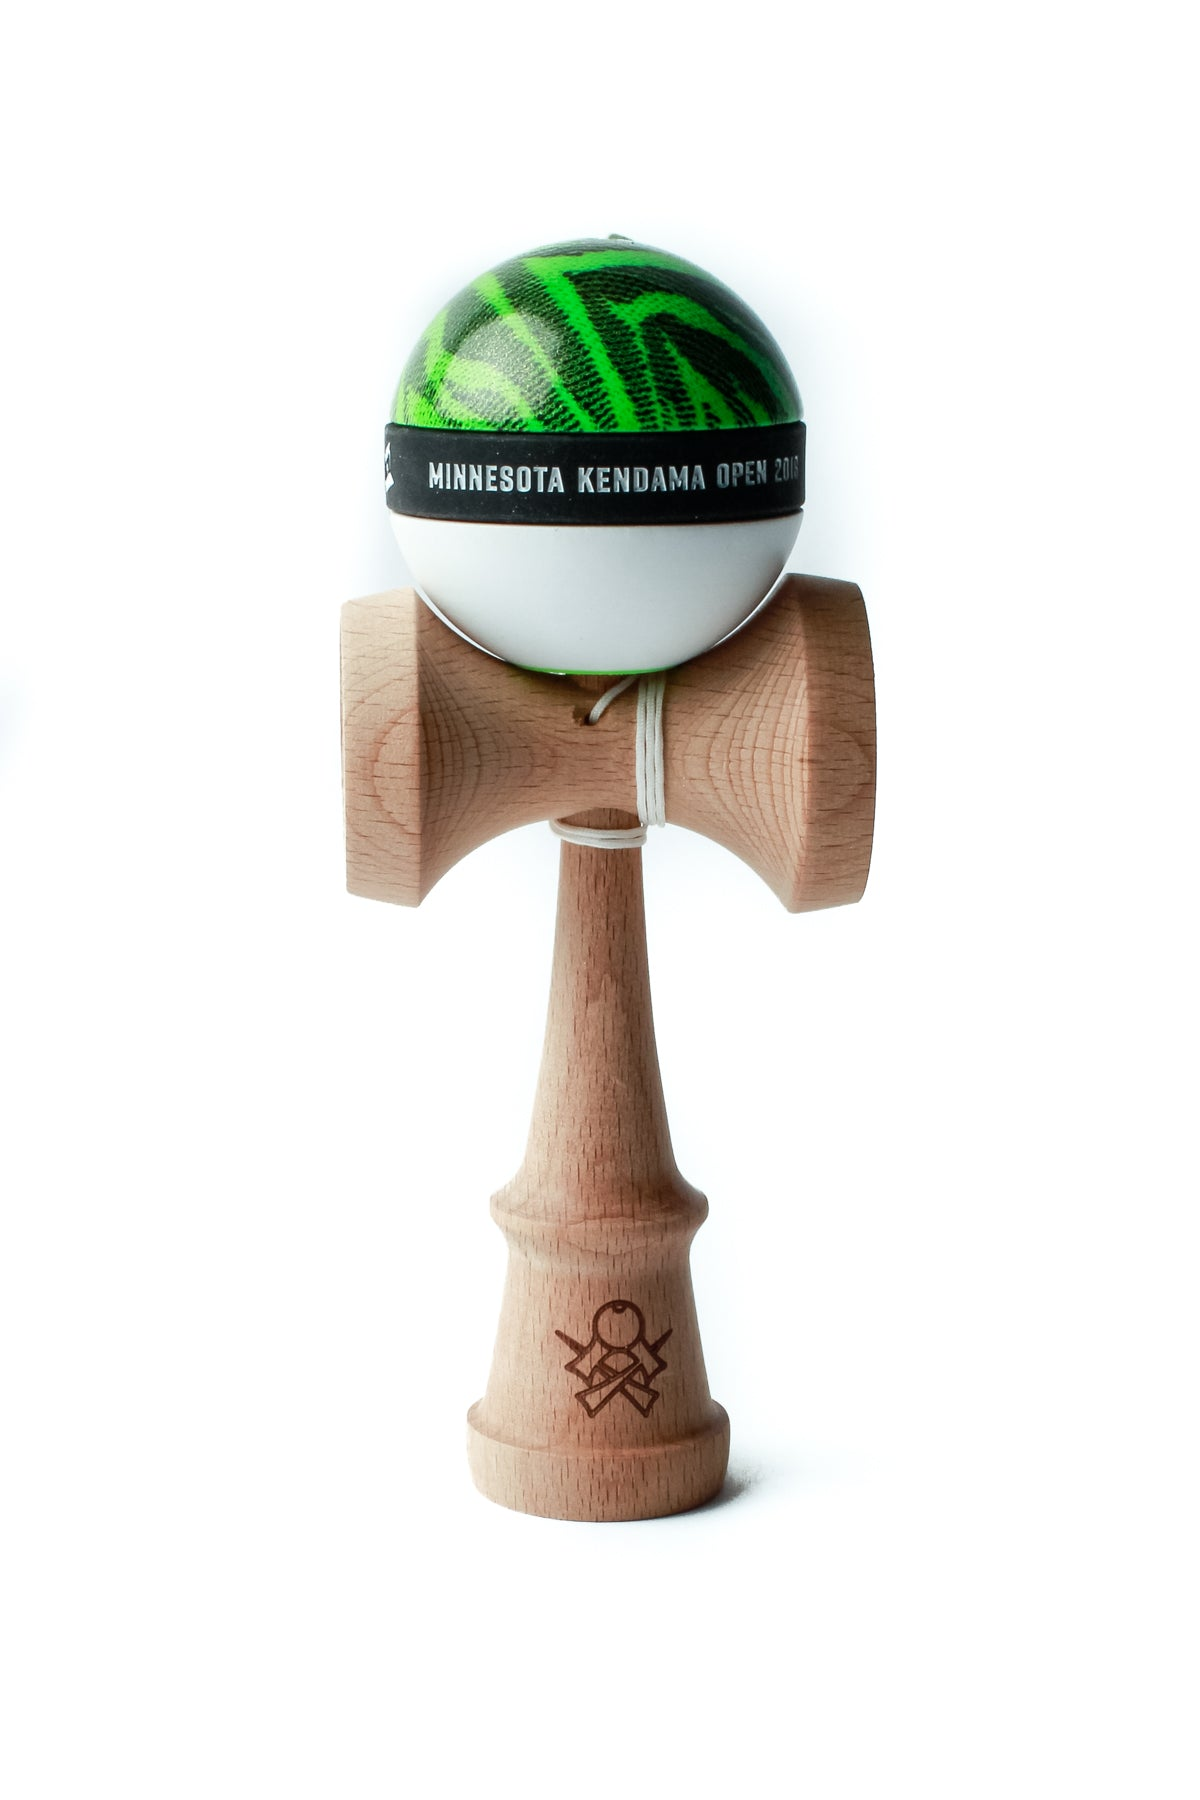 MKO 2018 Kendama - Pro Clear & Cushion Clear